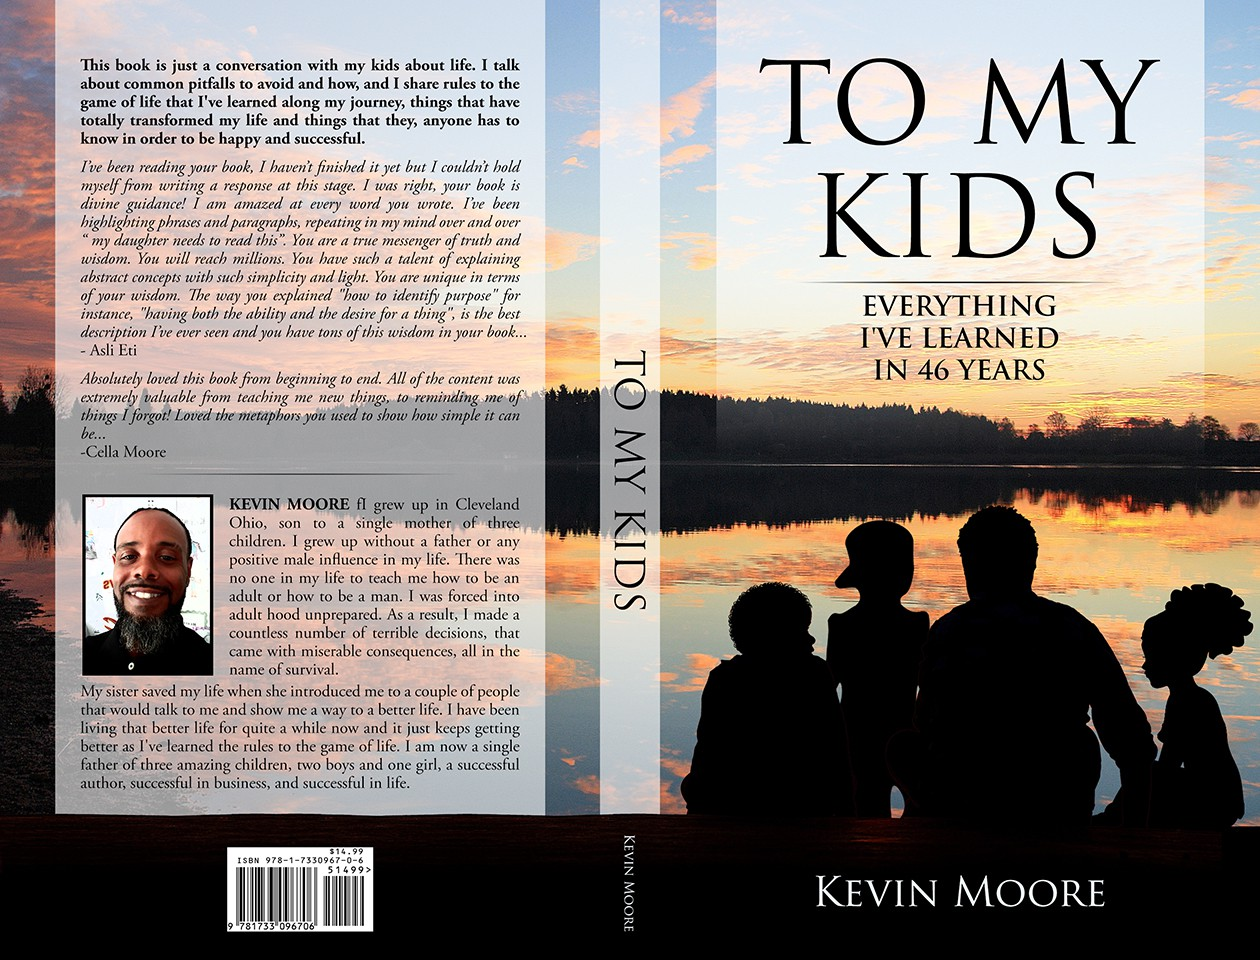 "Design a book cover for, ""To my kids; everything I've learned in 46 years."""